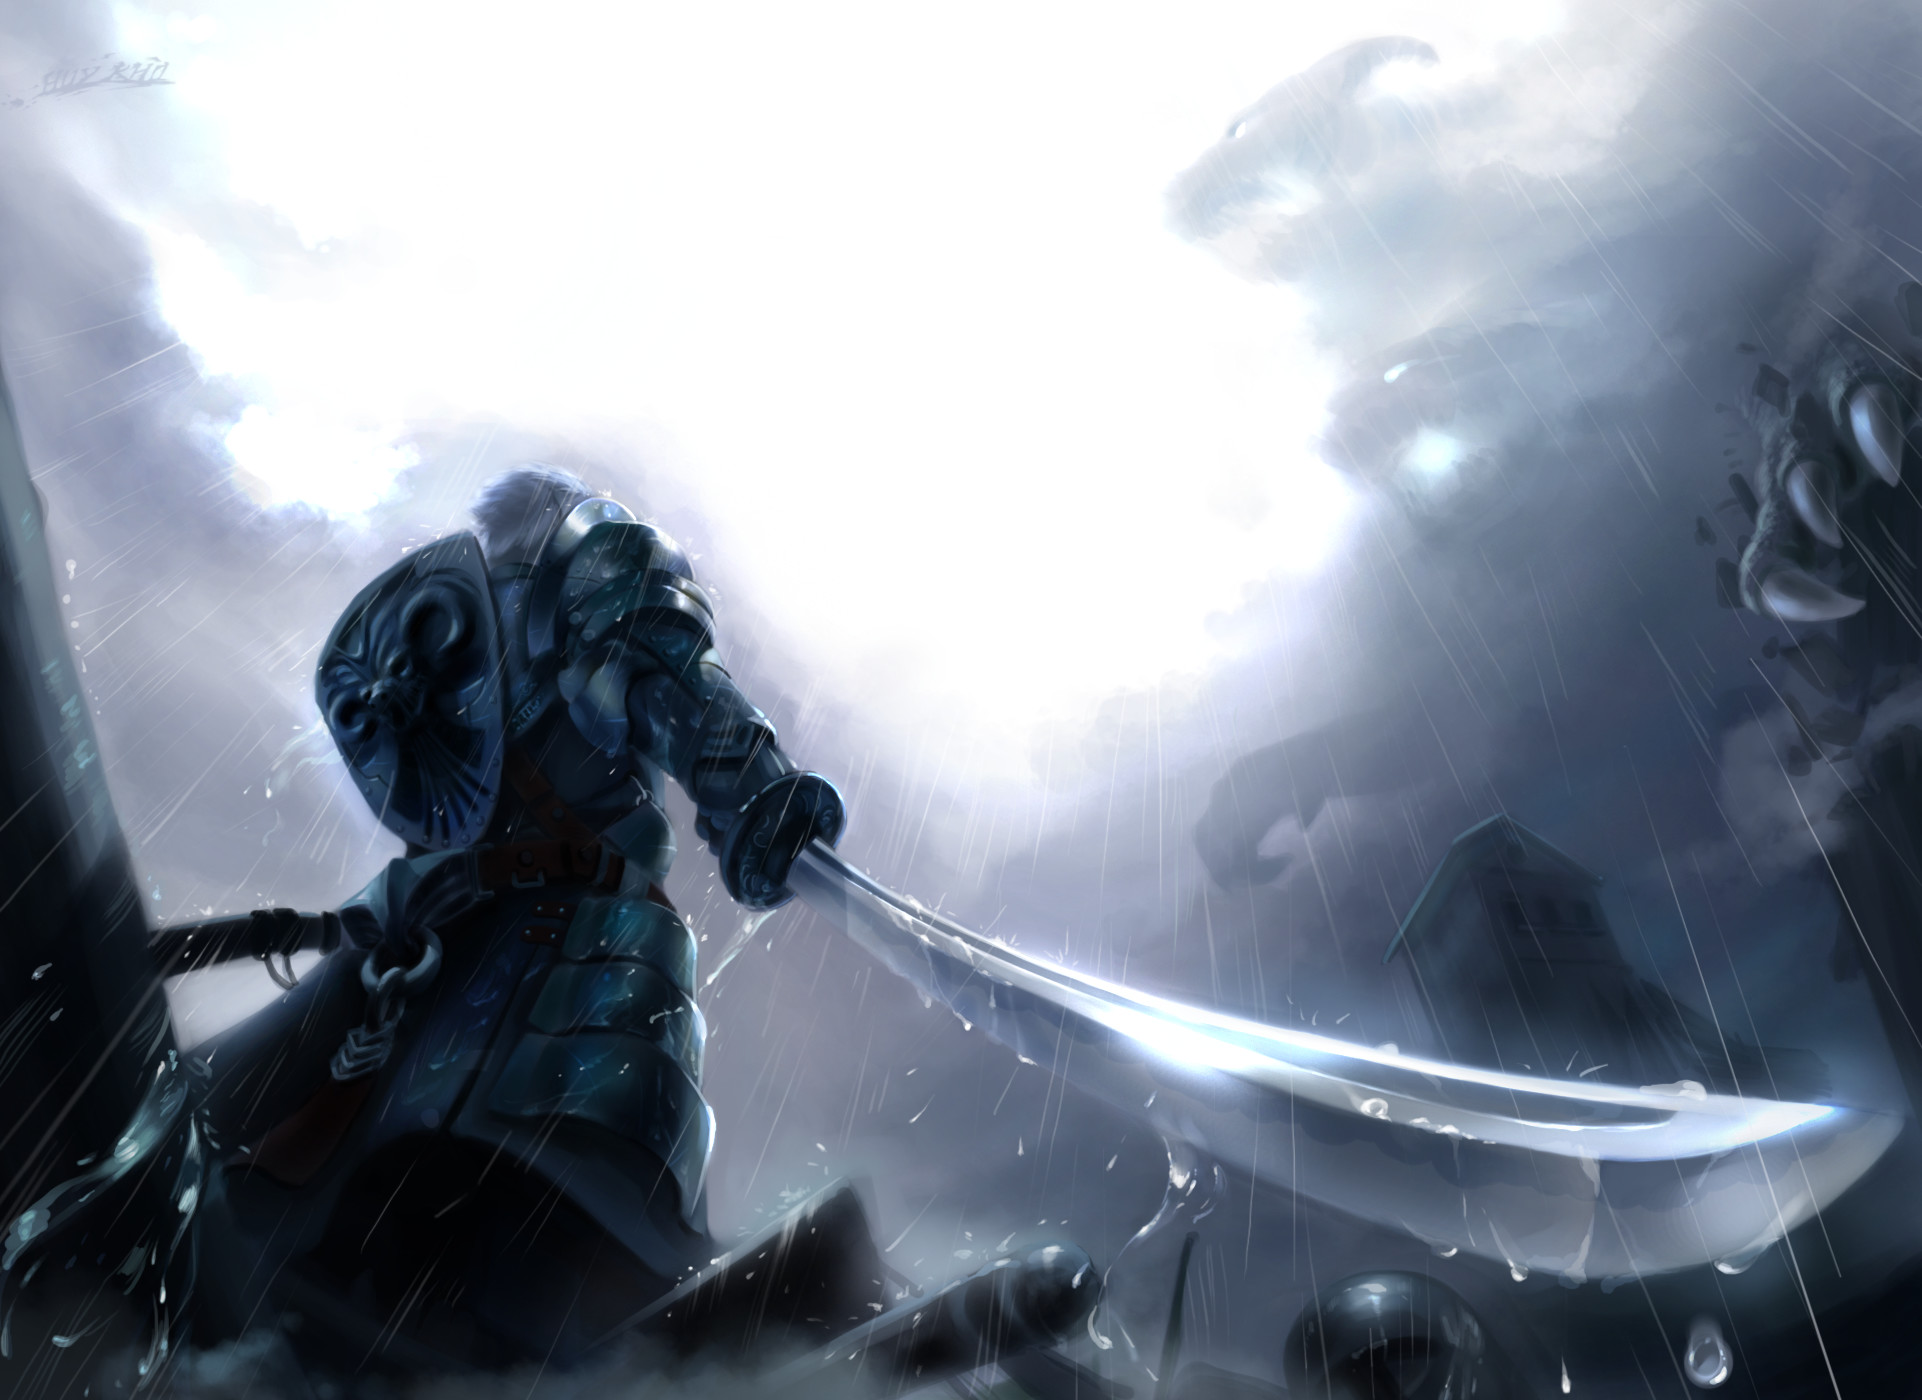 1922x1400 Anime - Original Knight Anime Warrior Original (Anime) Cloud Rain Sword  Weapon Armor Shield